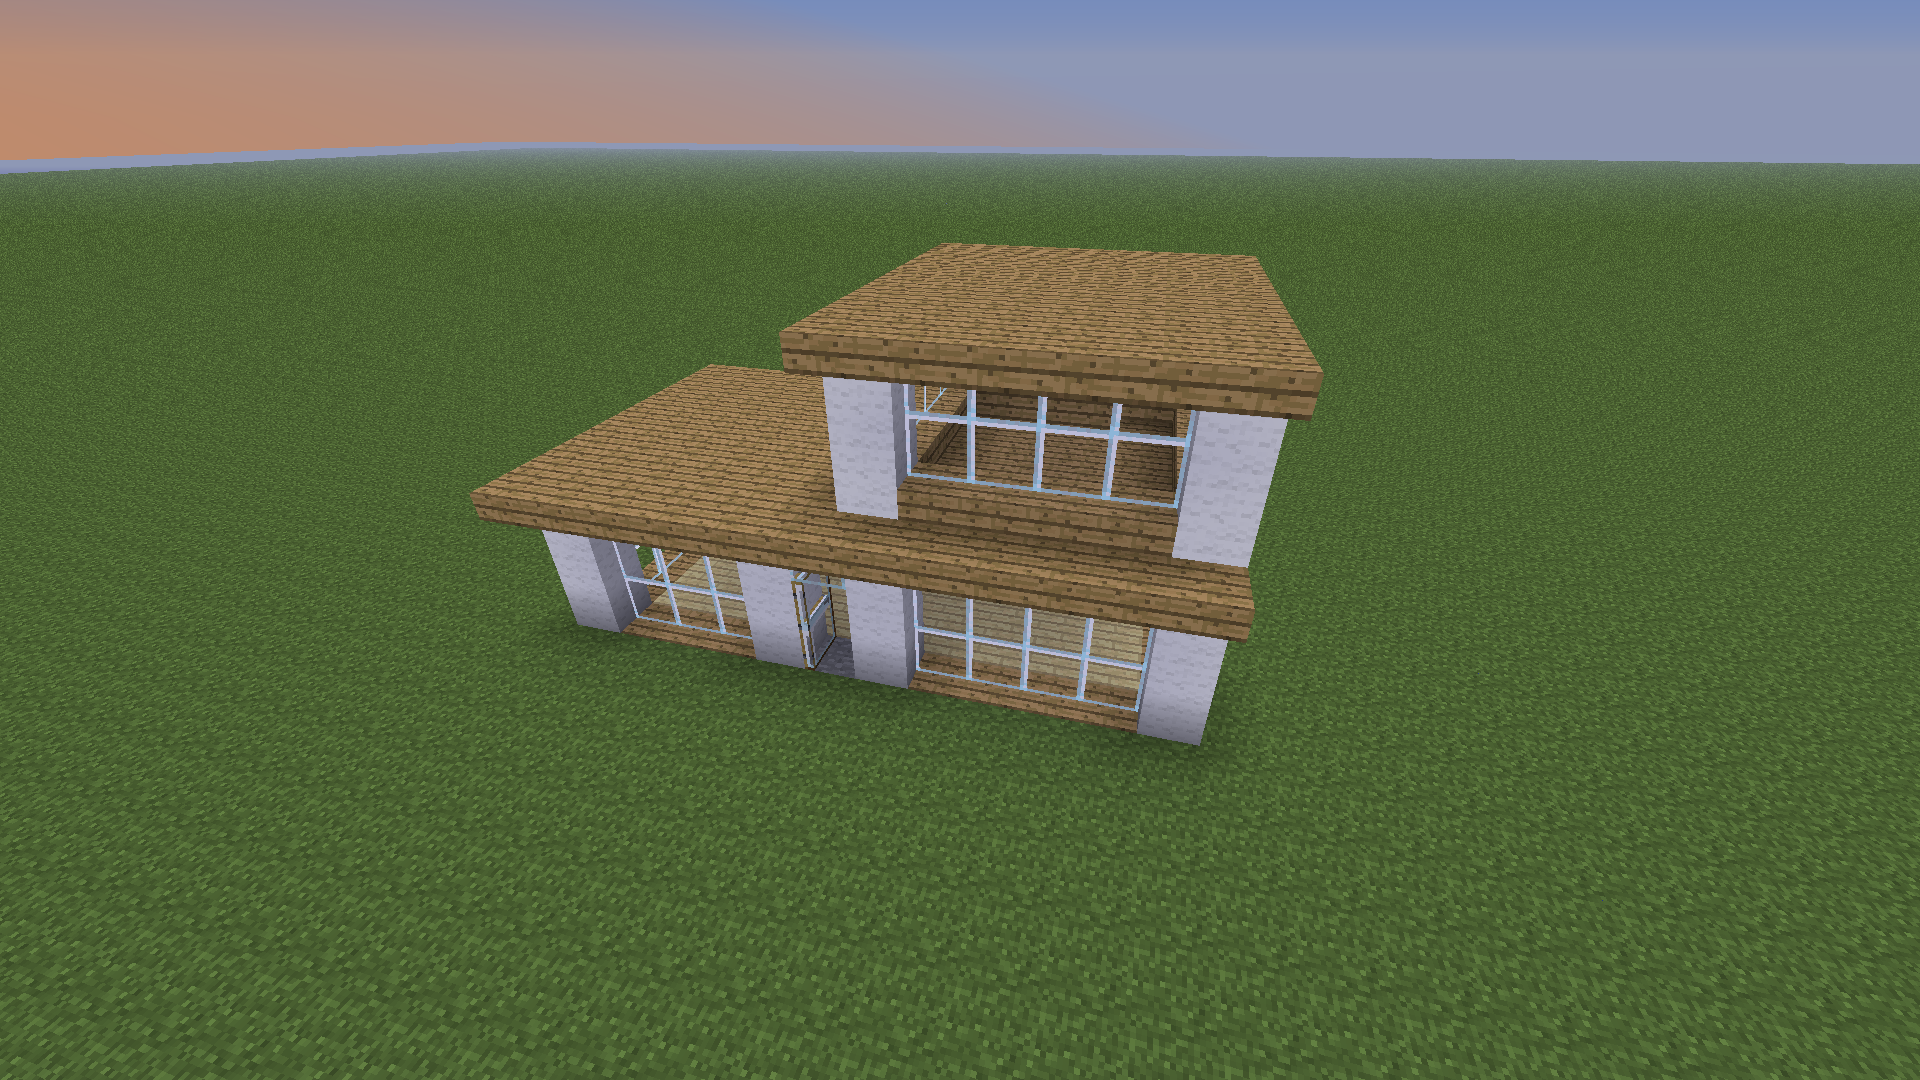 house minecraft tutorial minecraft house designs and minecraft